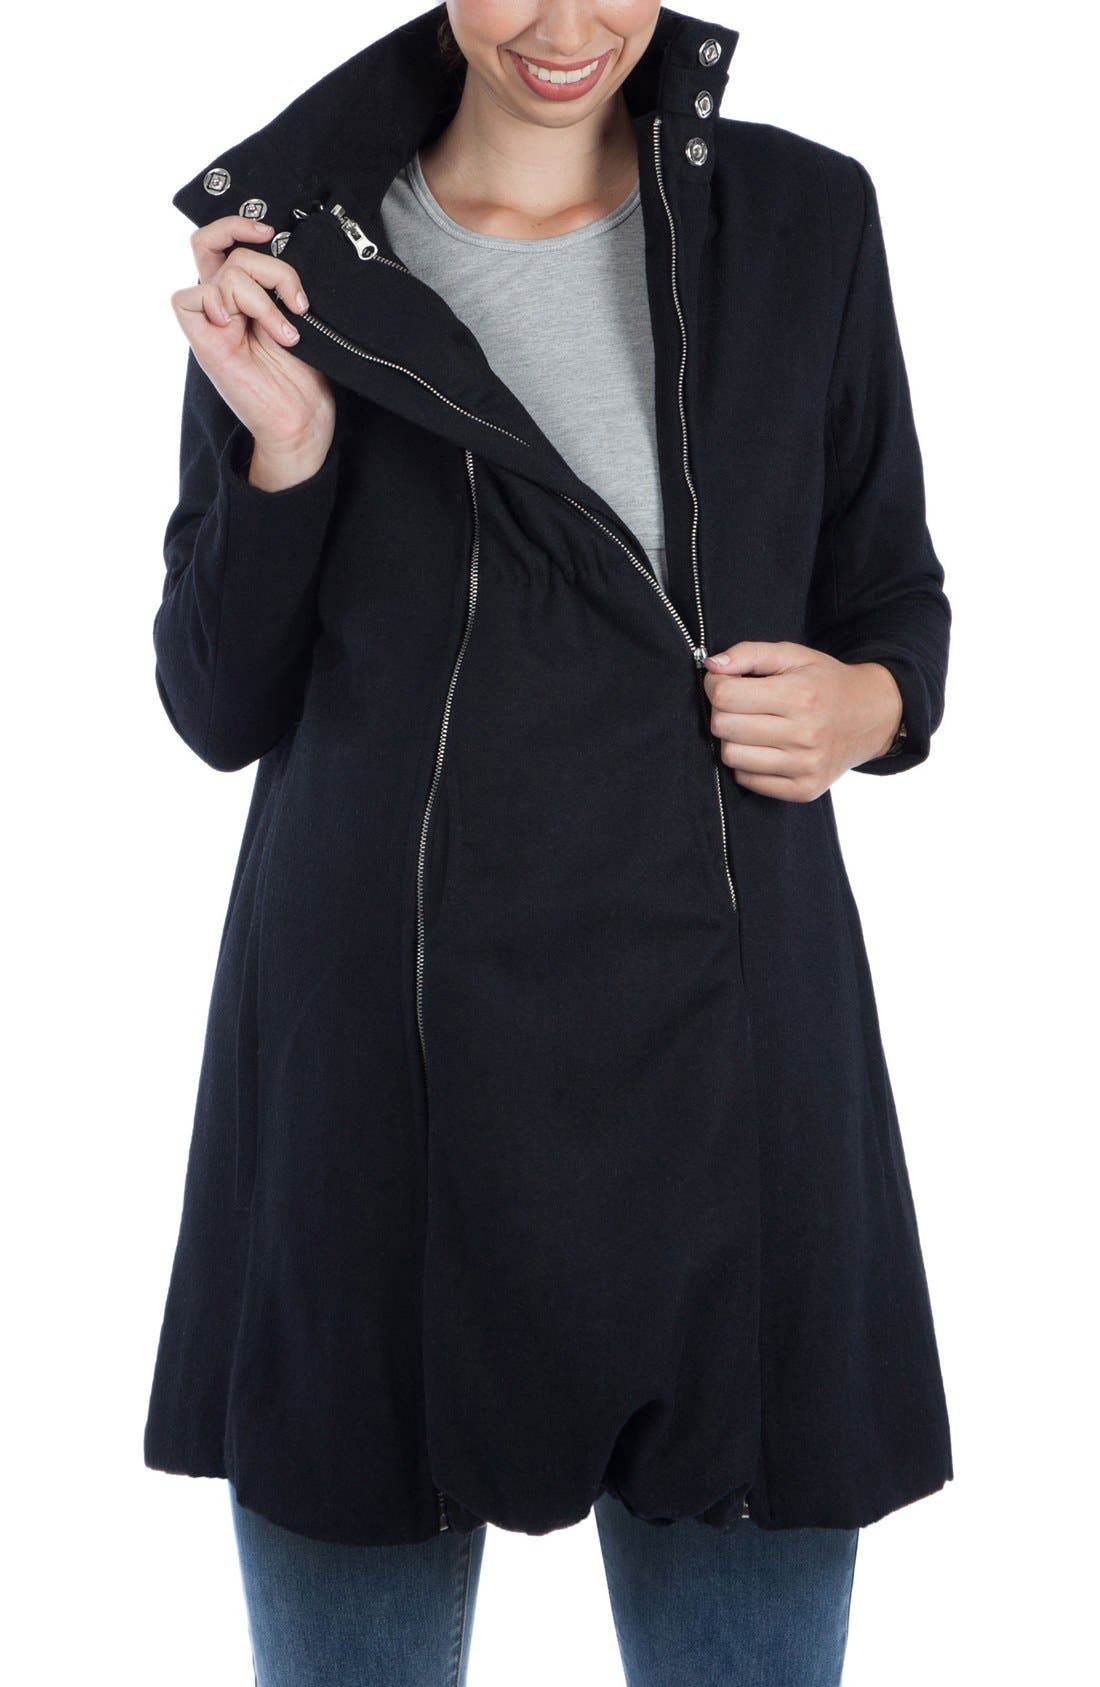 A-Line Convertible 3-in-1 Maternity Swing Coat,                             Alternate thumbnail 6, color,                             BLACK